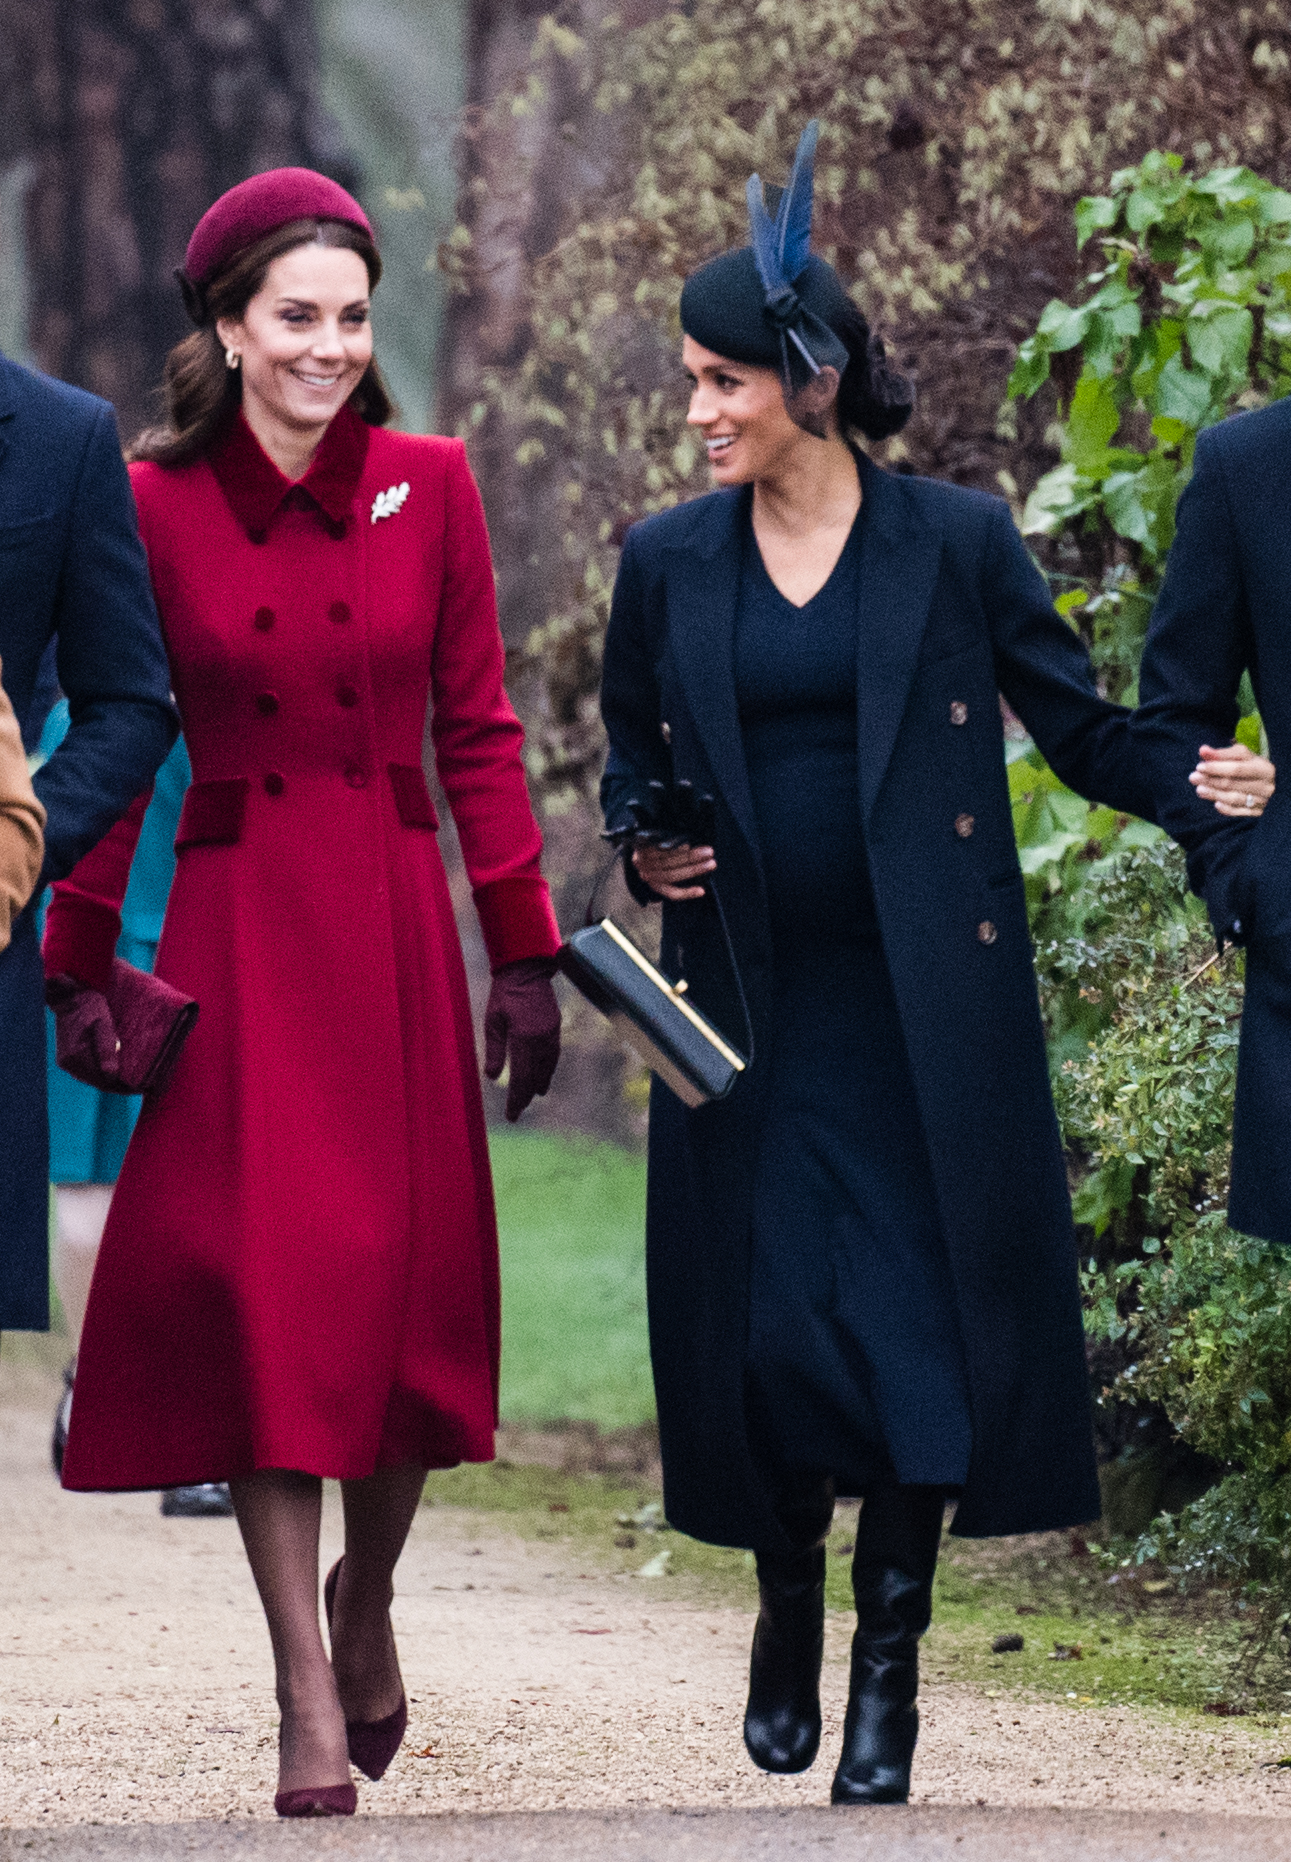 KING'S LYNN, ENGLAND - DECEMBER 25: Catherine, Duchess of Cambridge and Meghan, Duchess of Sussex attend Christmas Day Church service at Church of St Mary Magdalene on the Sandringham estate on December 25, 2018 in King's Lynn, England. (Photo by Samir Hussein/WireImage)